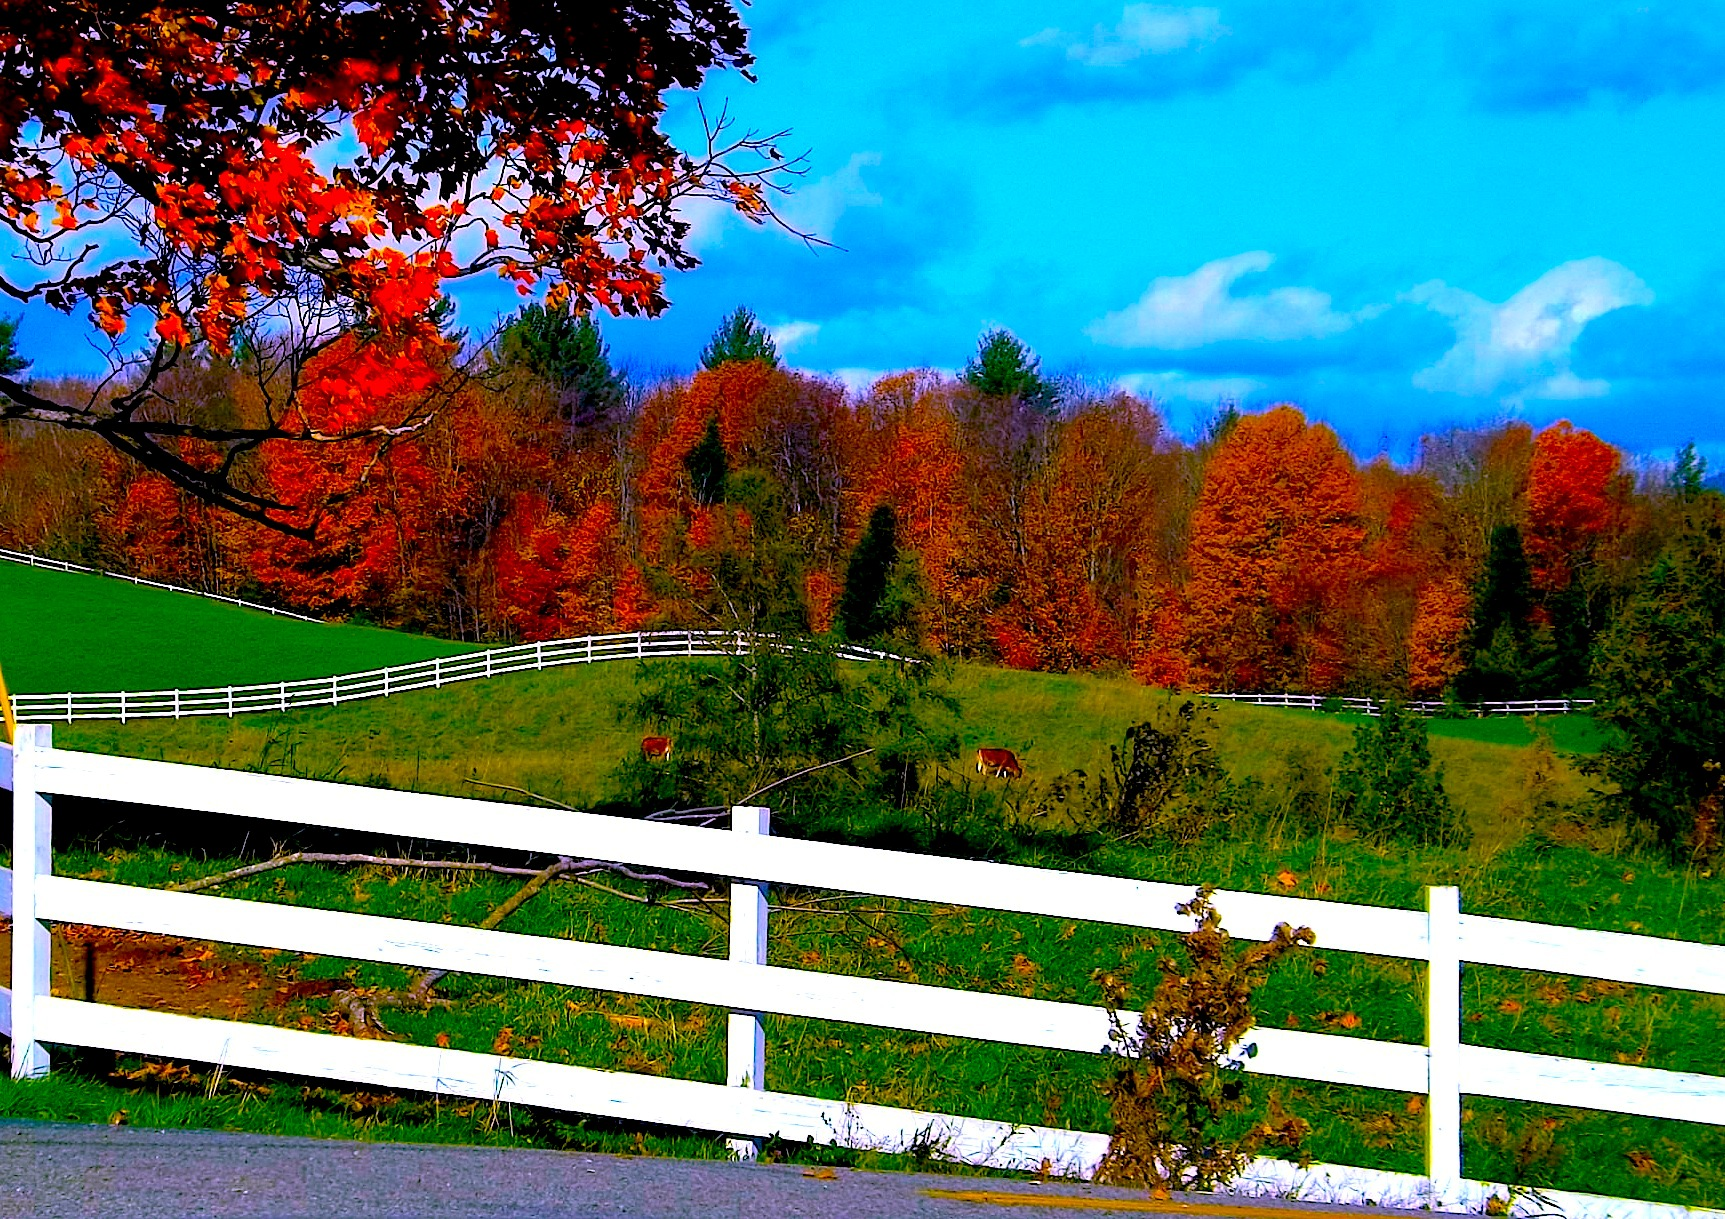 VT POSTCARD FALL FOLIAGE AND FENCES